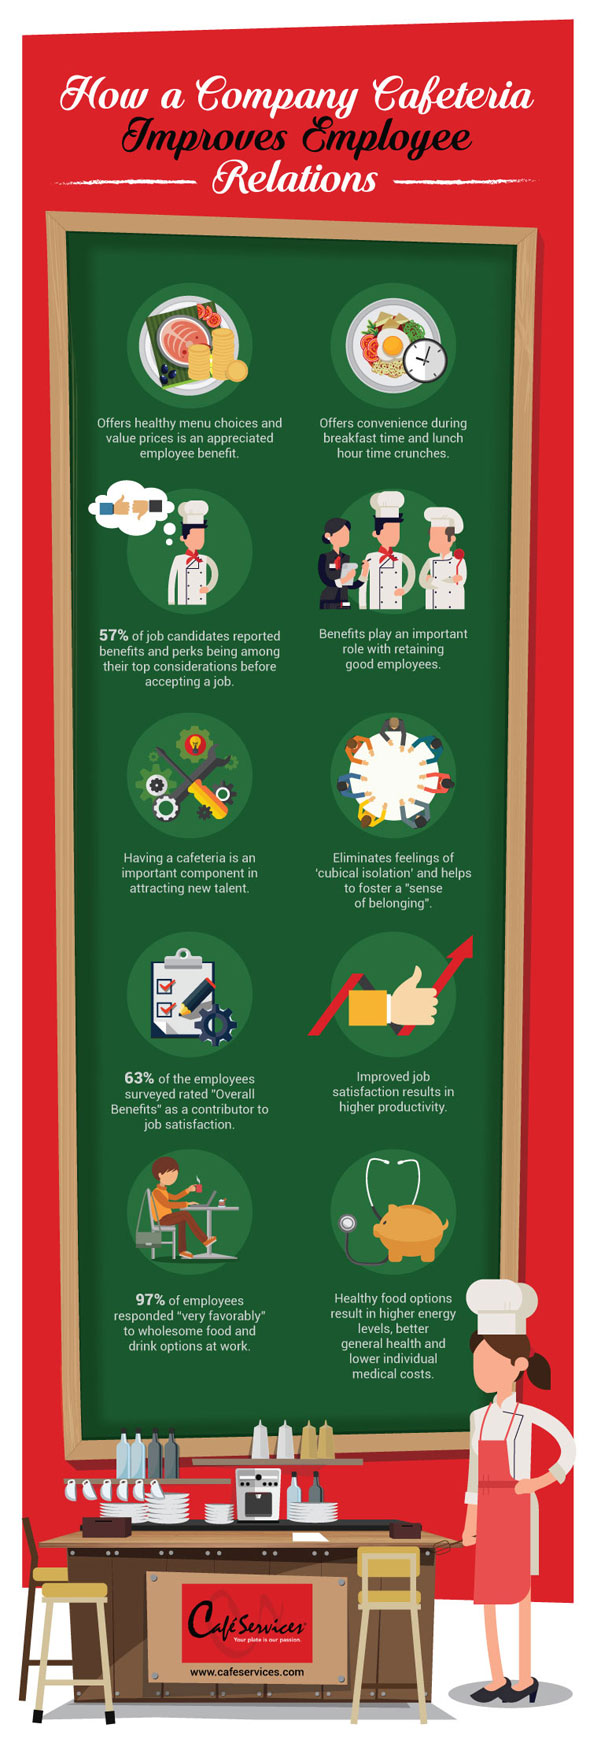 Infographic illustrating how a company cafeteria improves employee relations